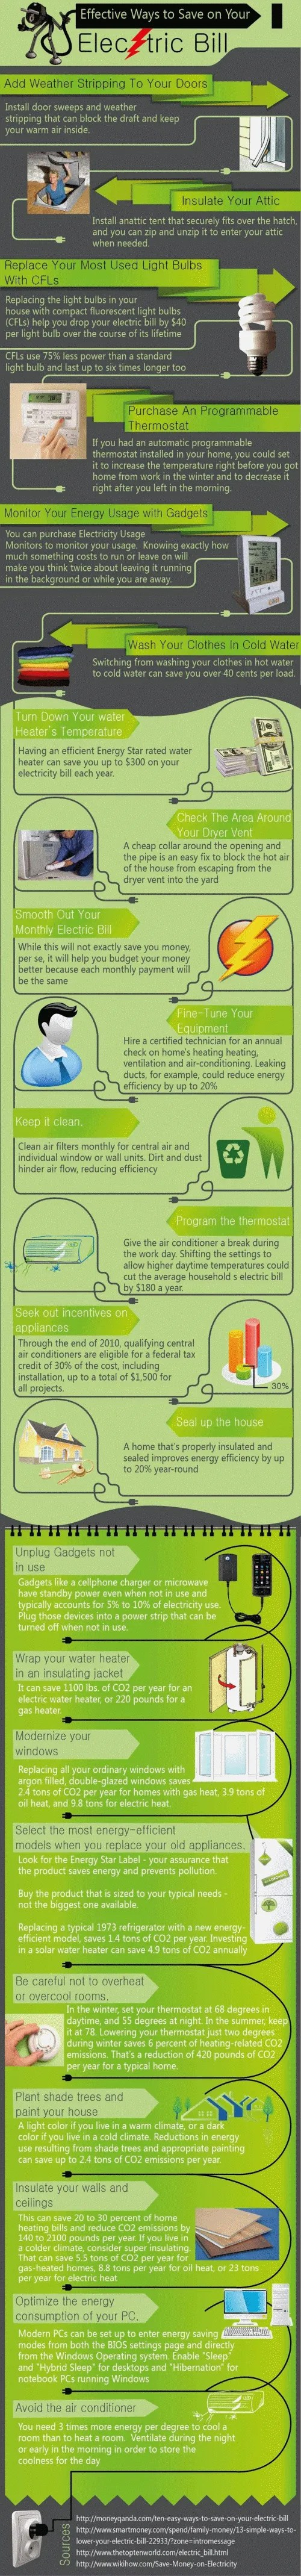 electric bill tips